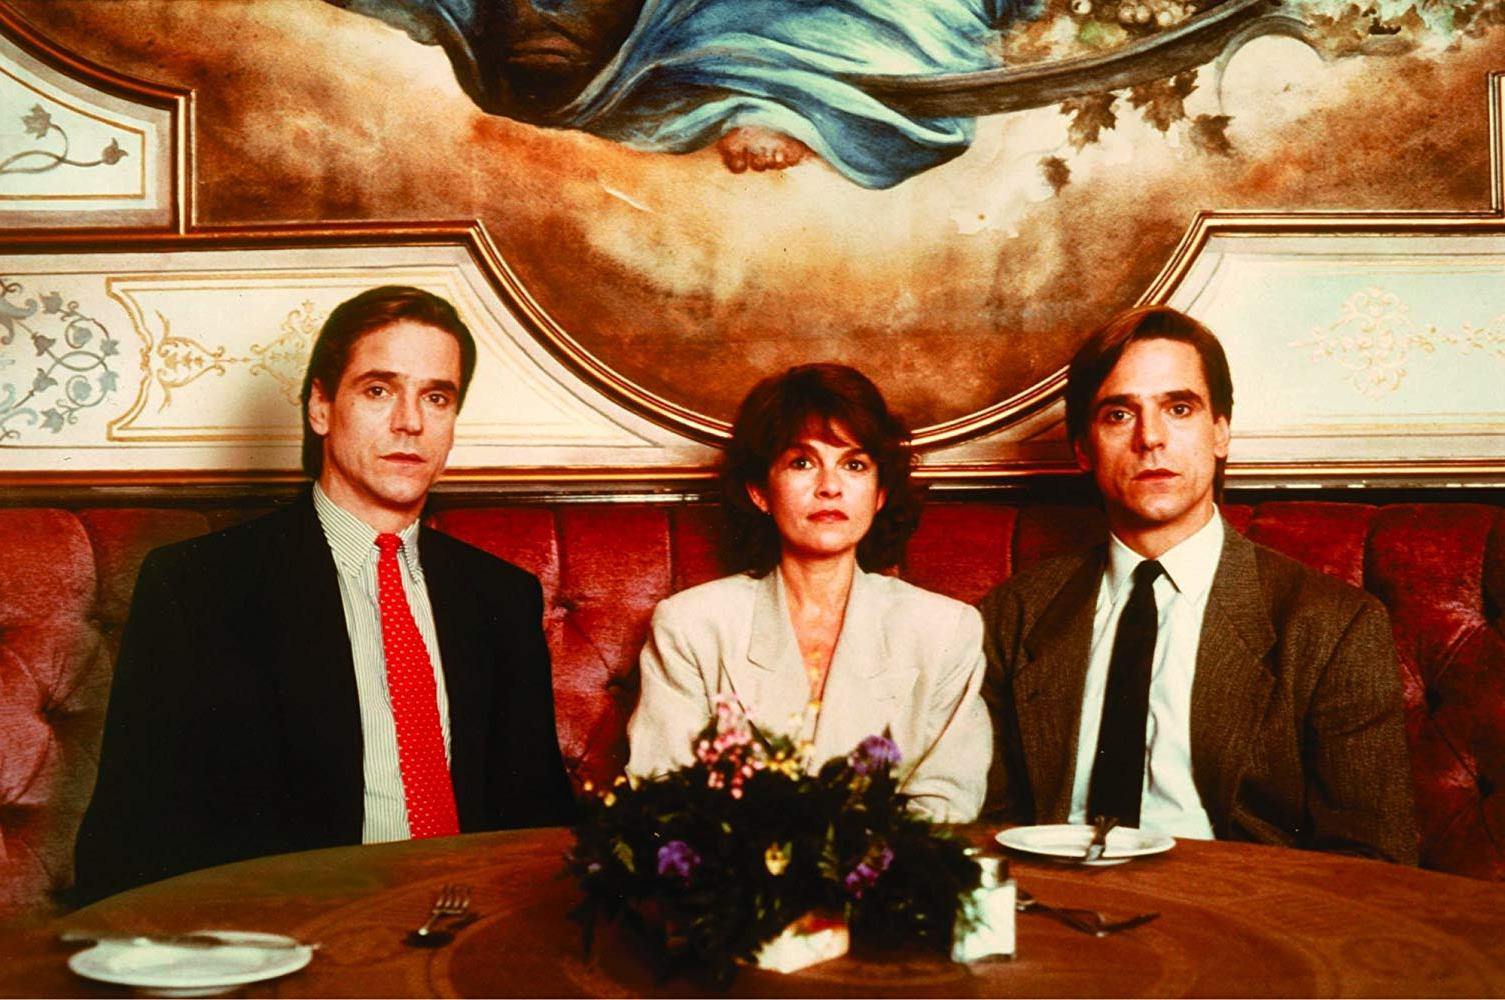 Jeremy Irons as the Mantle twins with Genevieve Bujold in Dead Ringers (1988)